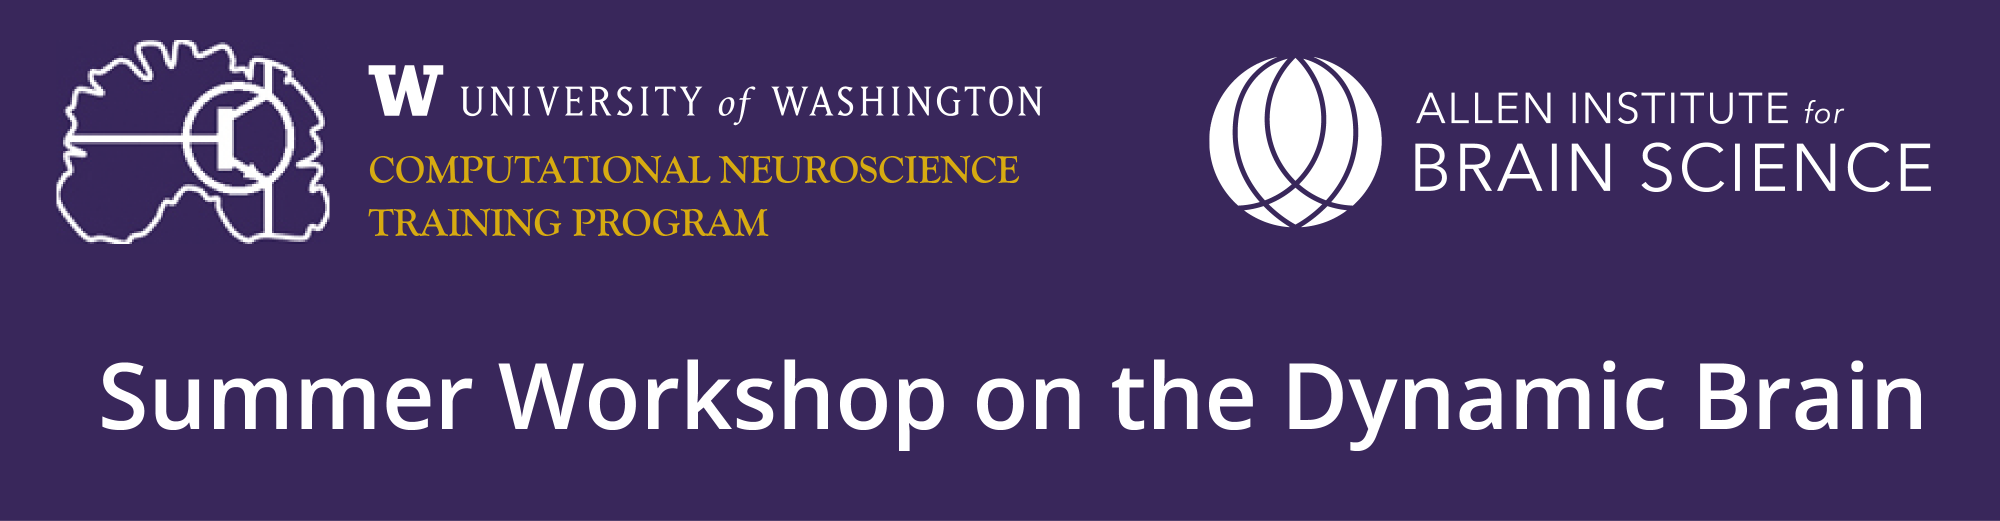 Summer Workshop on the Dynamic Brain